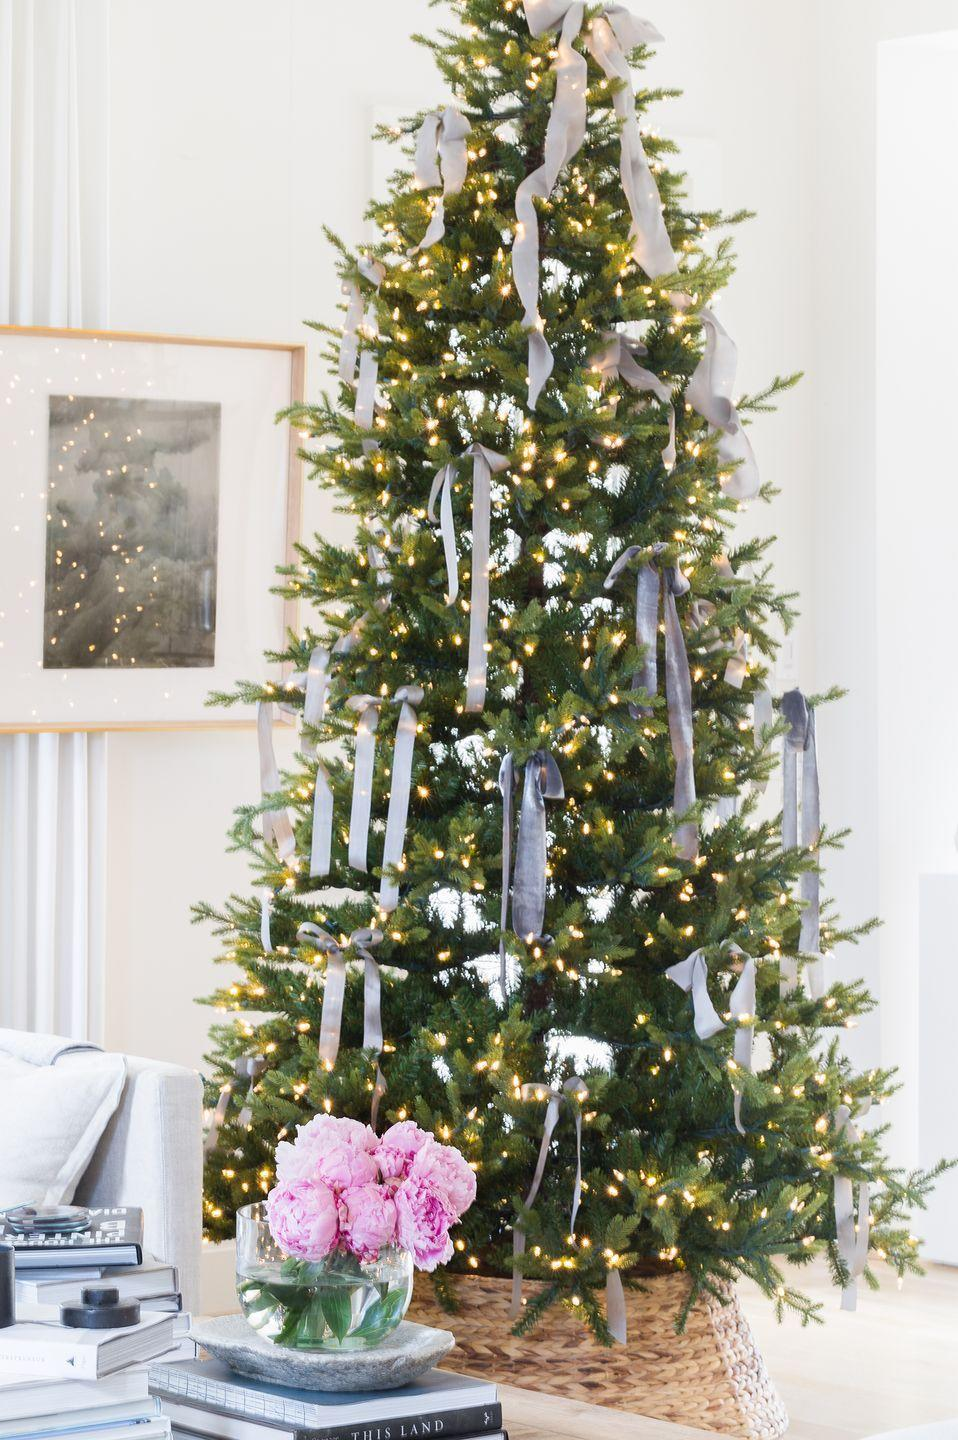 "<p>Switch things up without adding more work to your decorating agenda by exchanging ornaments for ribbons, like in this setup styled by <a href=""http://alyssarosenheck.com/"" rel=""nofollow noopener"" target=""_blank"" data-ylk=""slk:Alyssa Rosenheck"" class=""link rapid-noclick-resp"">Alyssa Rosenheck</a>. </p>"